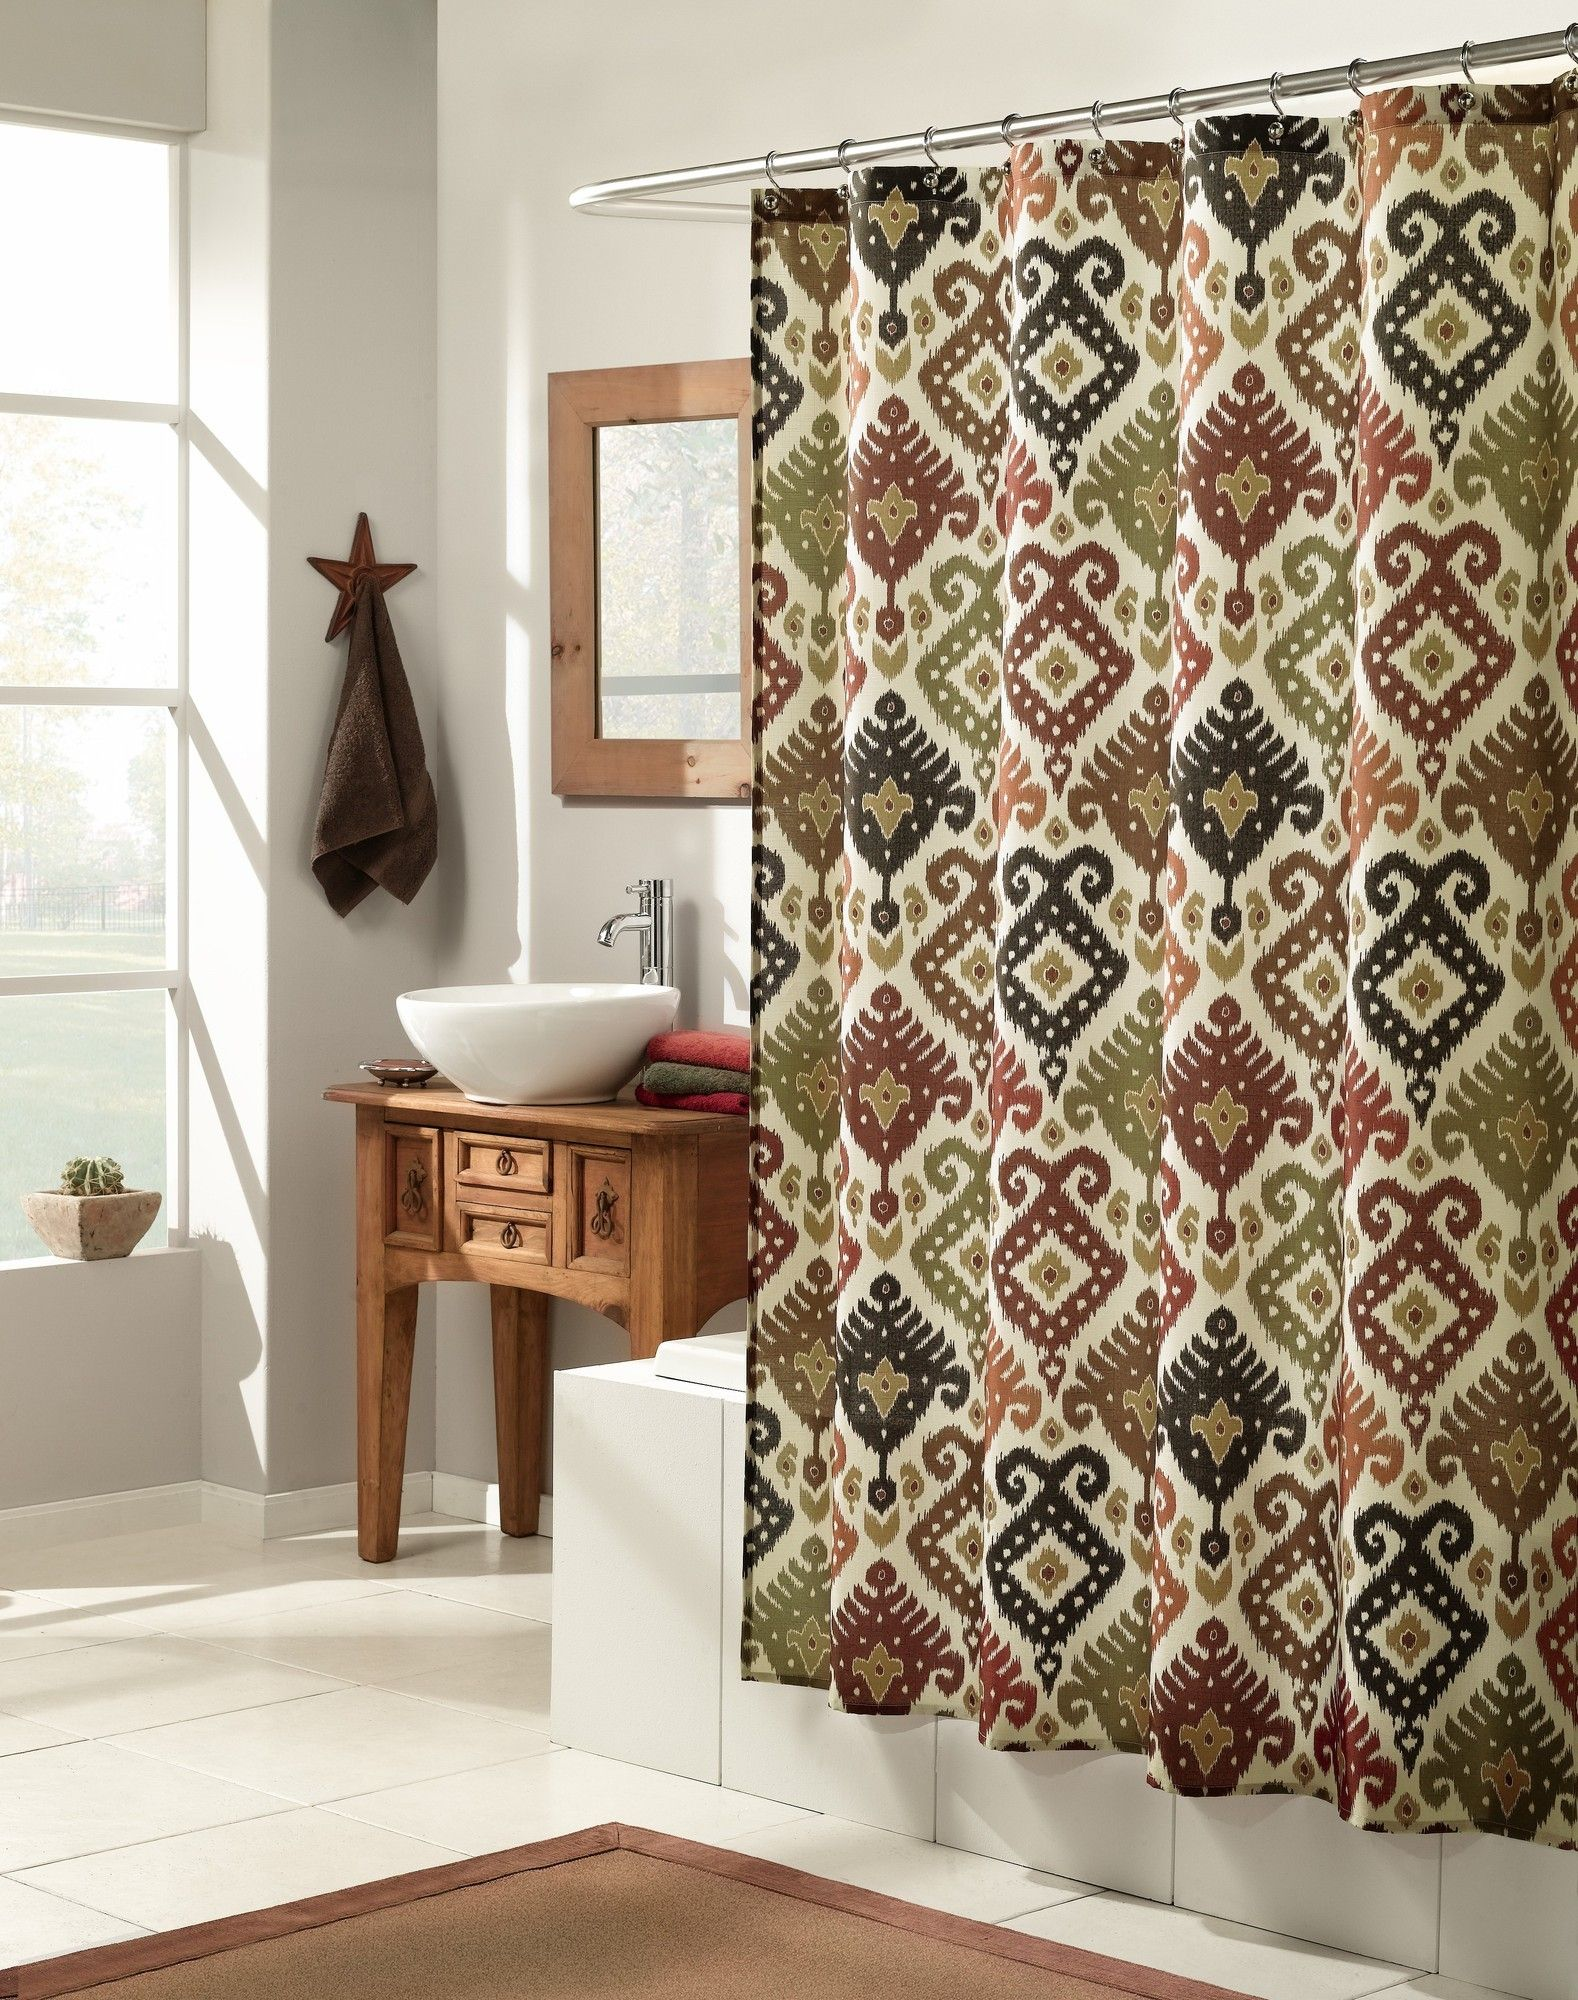 MASTER BATHROOM   M. Style Ikat Shower Curtain   MS8105 SPICE   $ 20